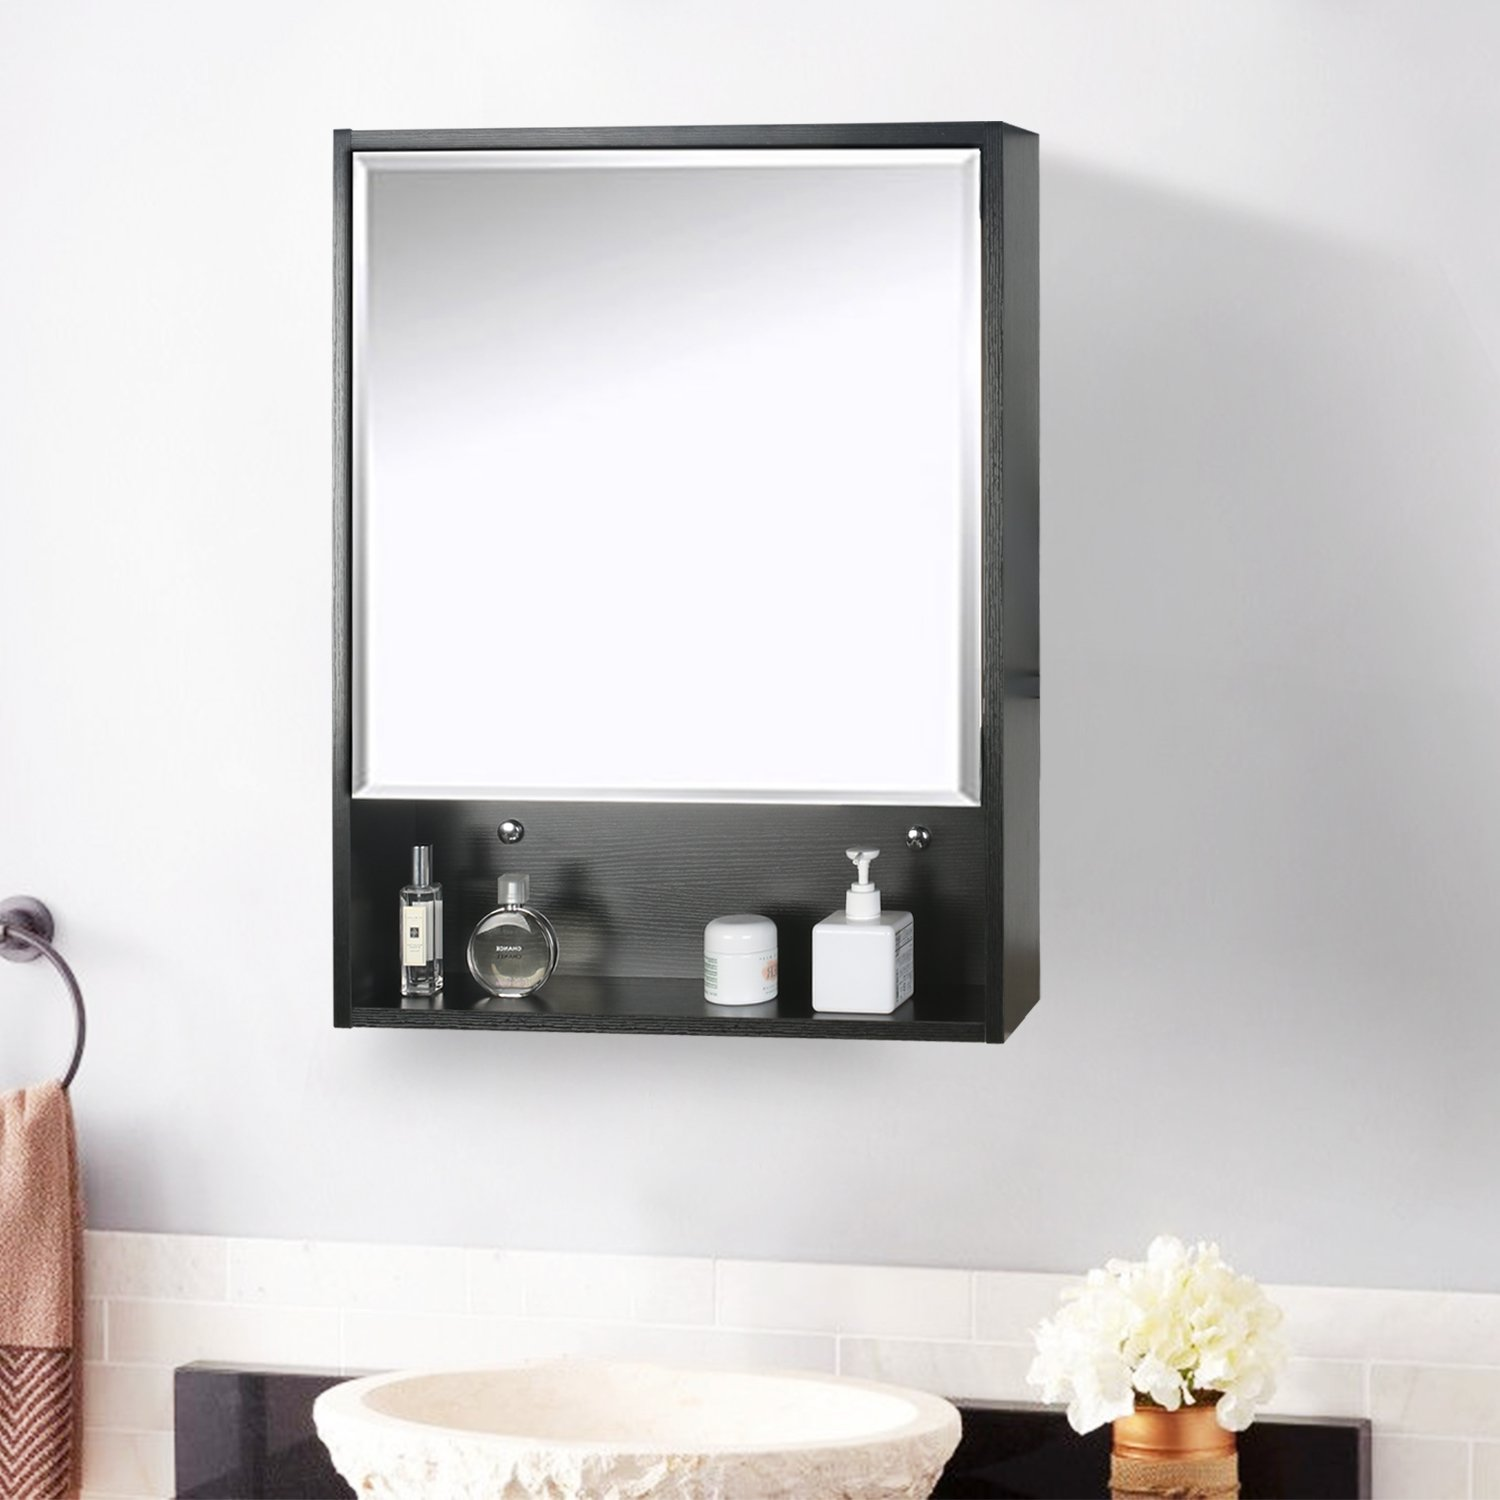 Eclife 22'' x 28'' Large Storage Bathroom Medicine Cabinet Organizer Mirror Storage Wood Adjustable Wall Mounted Mirror Cabinet Black C01